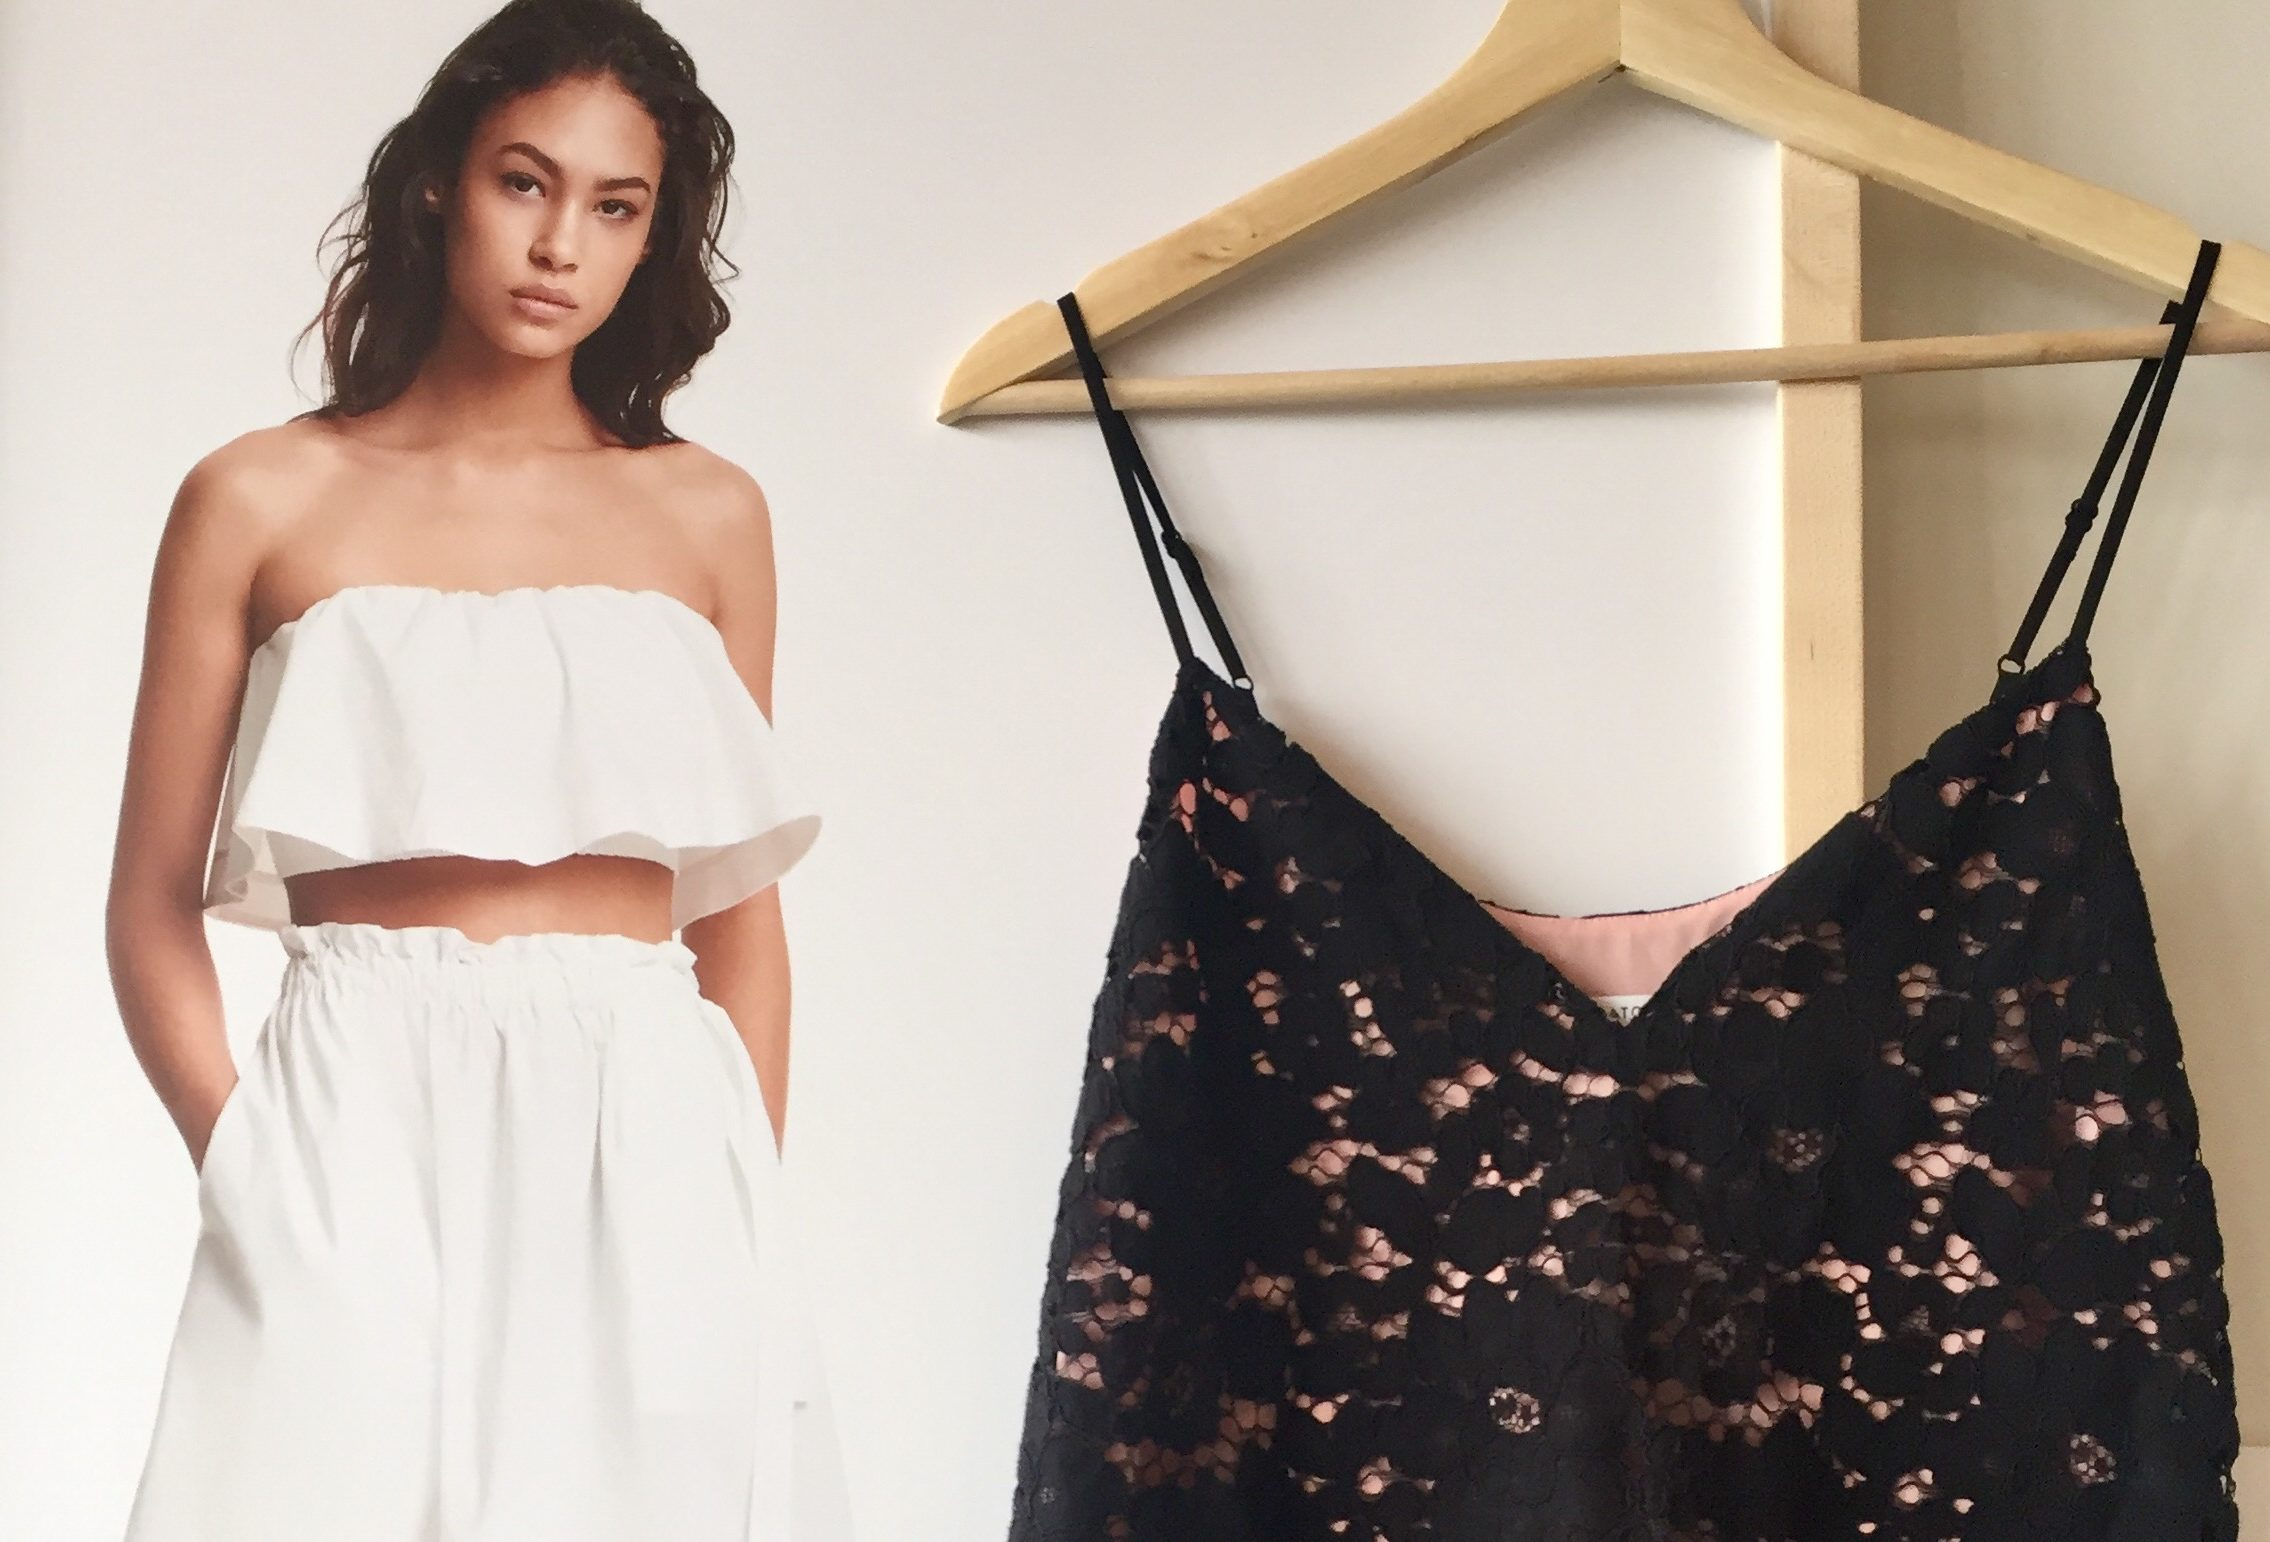 Voluminous whites, black lace by Aritzia.